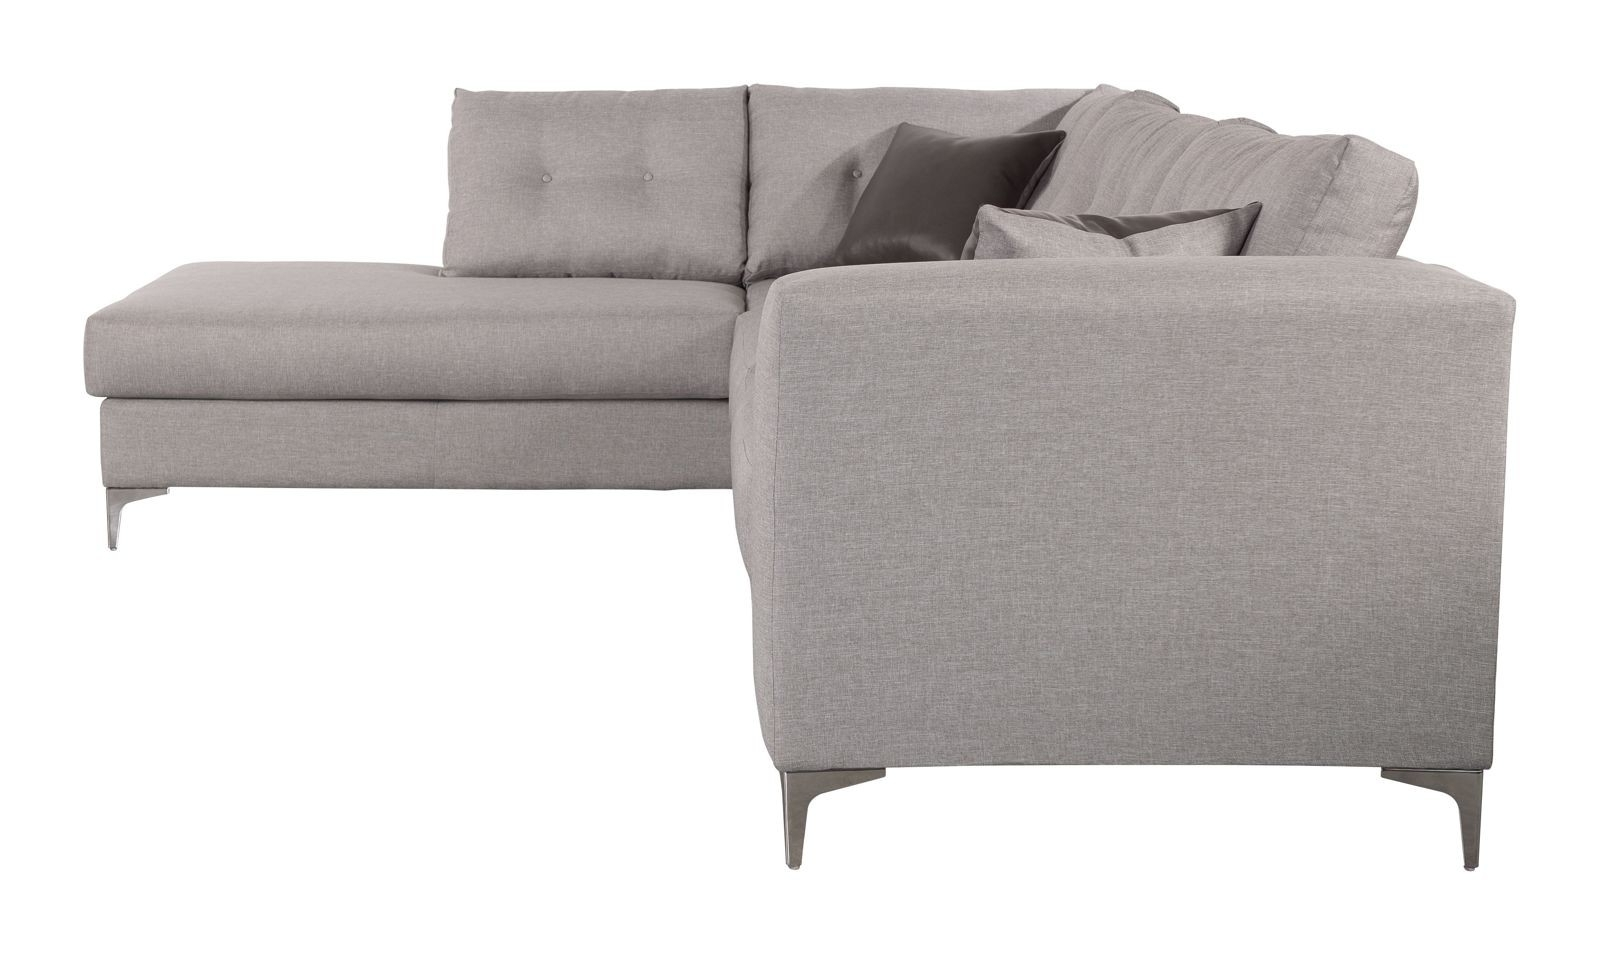 Cressina In Well Known Memphis Sectional Sofas (View 11 of 15)